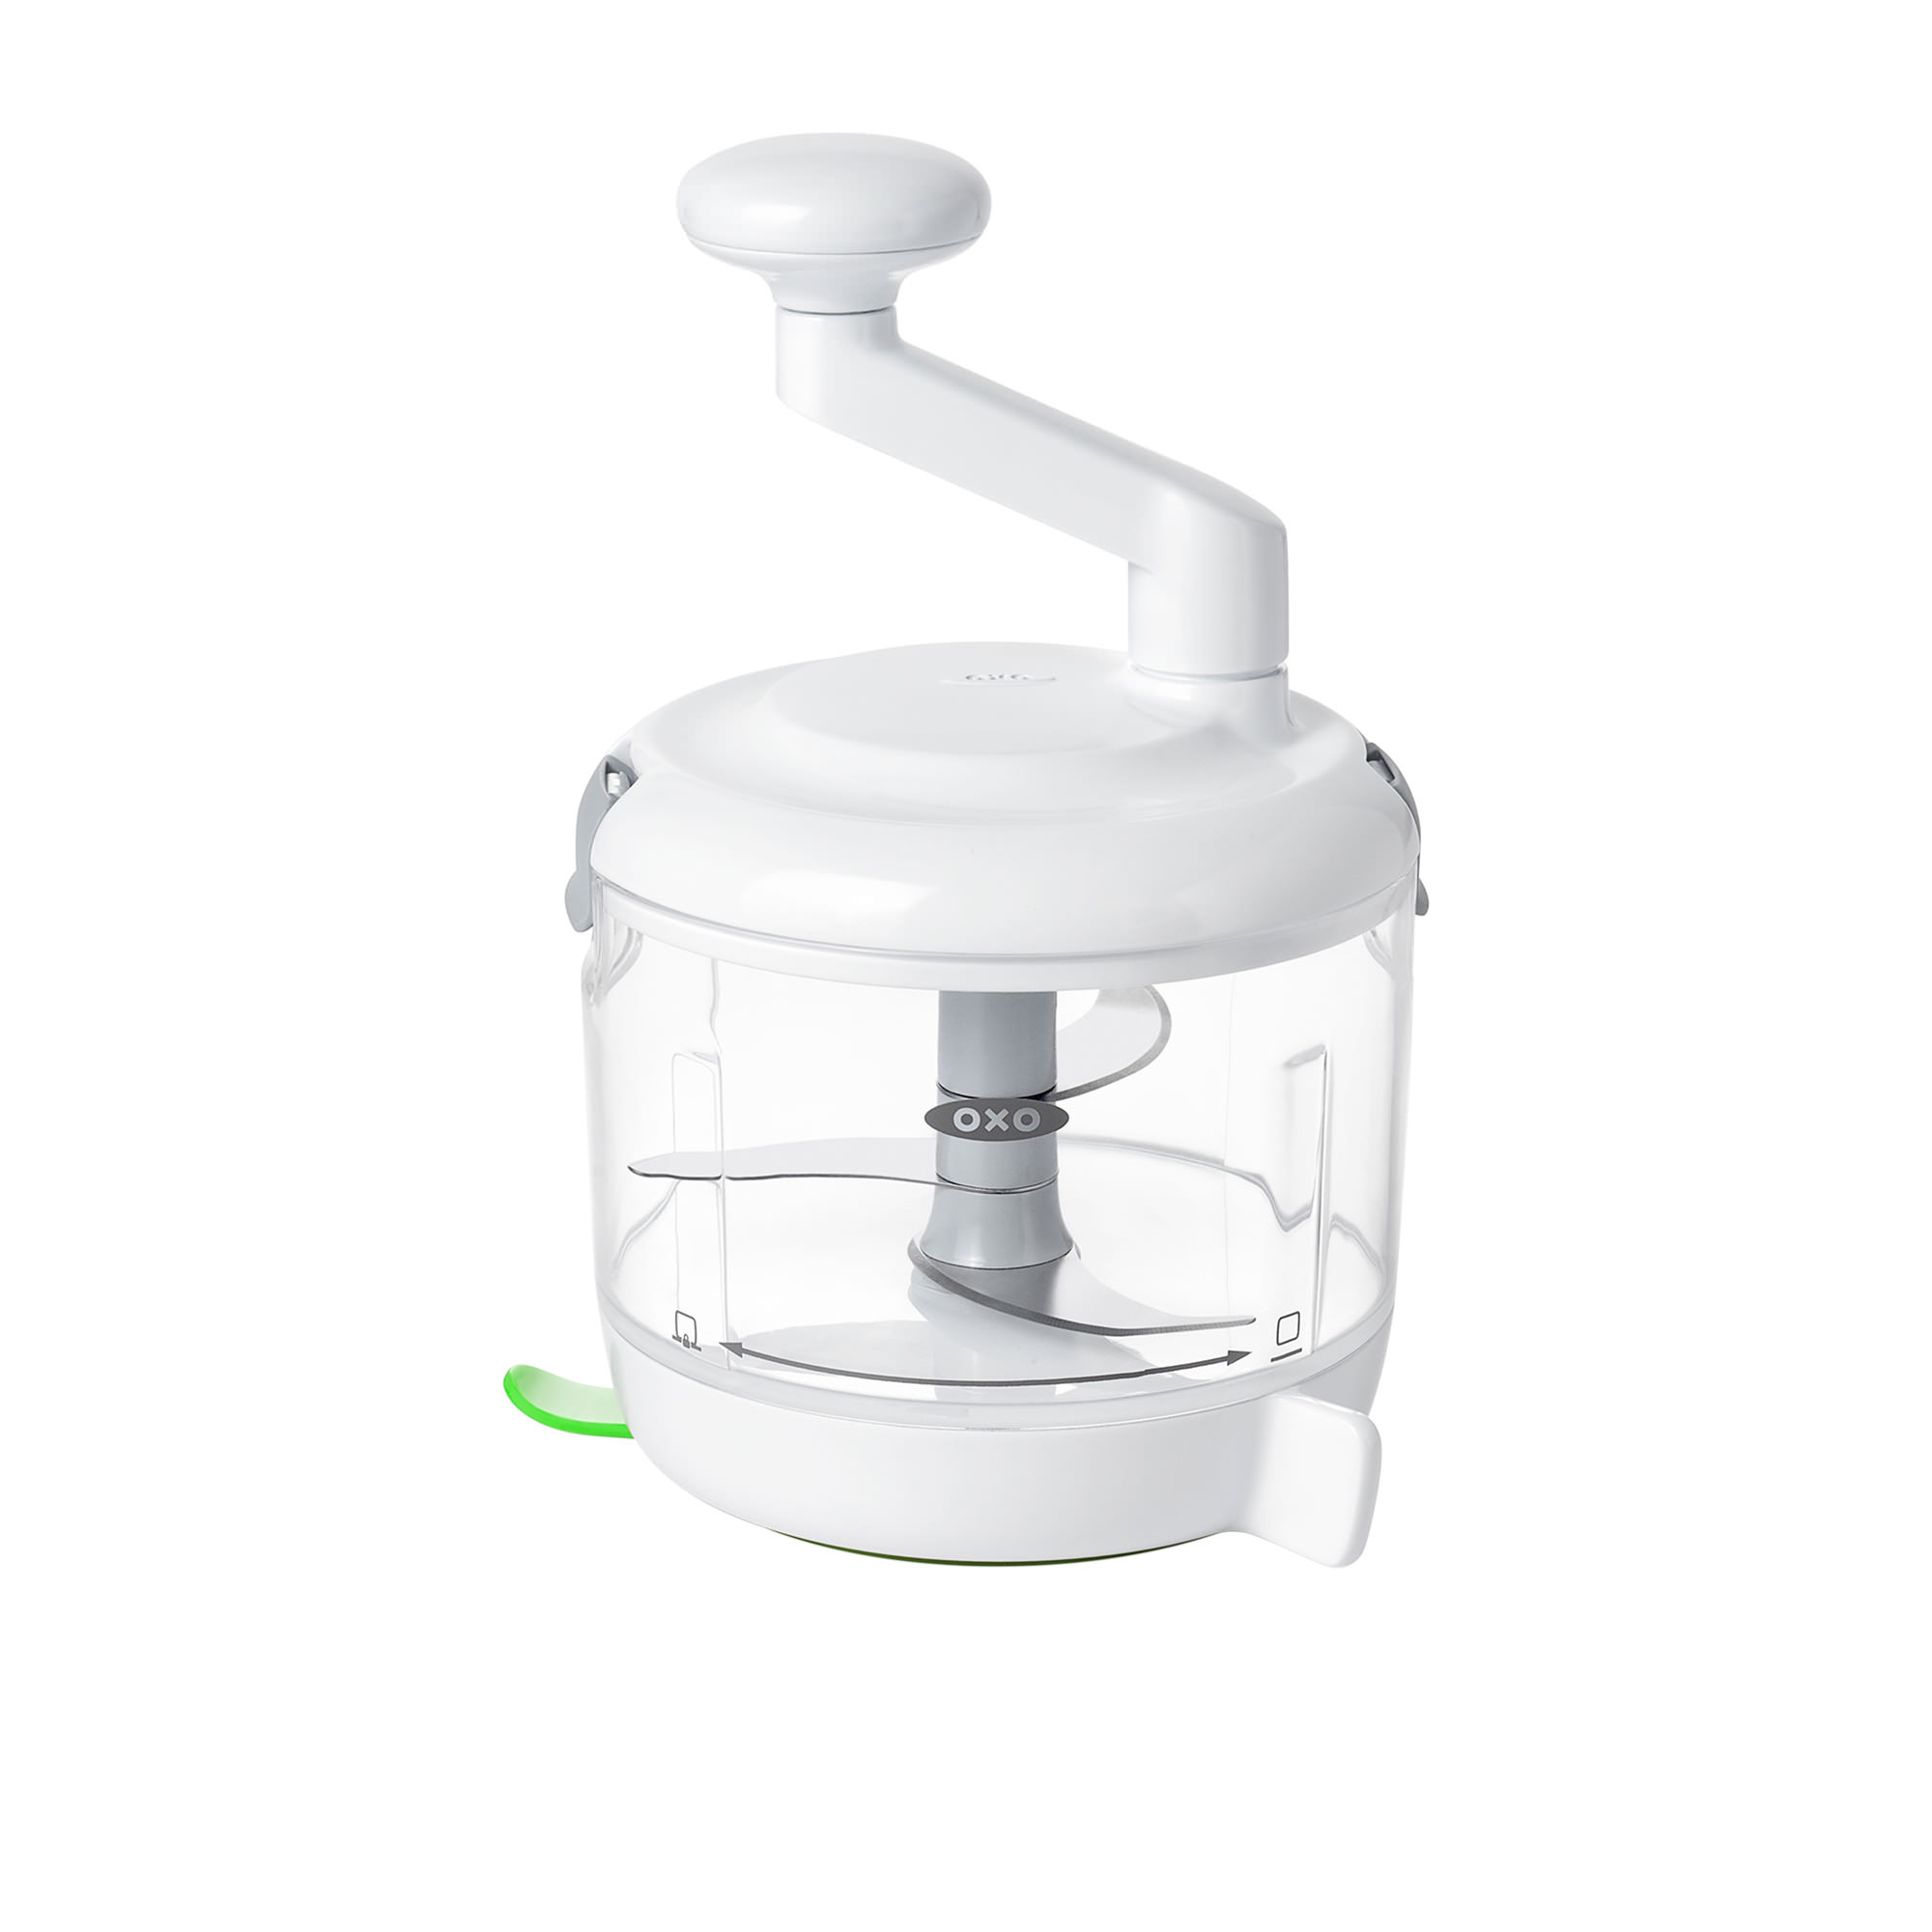 Oxo Good Grips One Stop Chop Manual Food Processor White